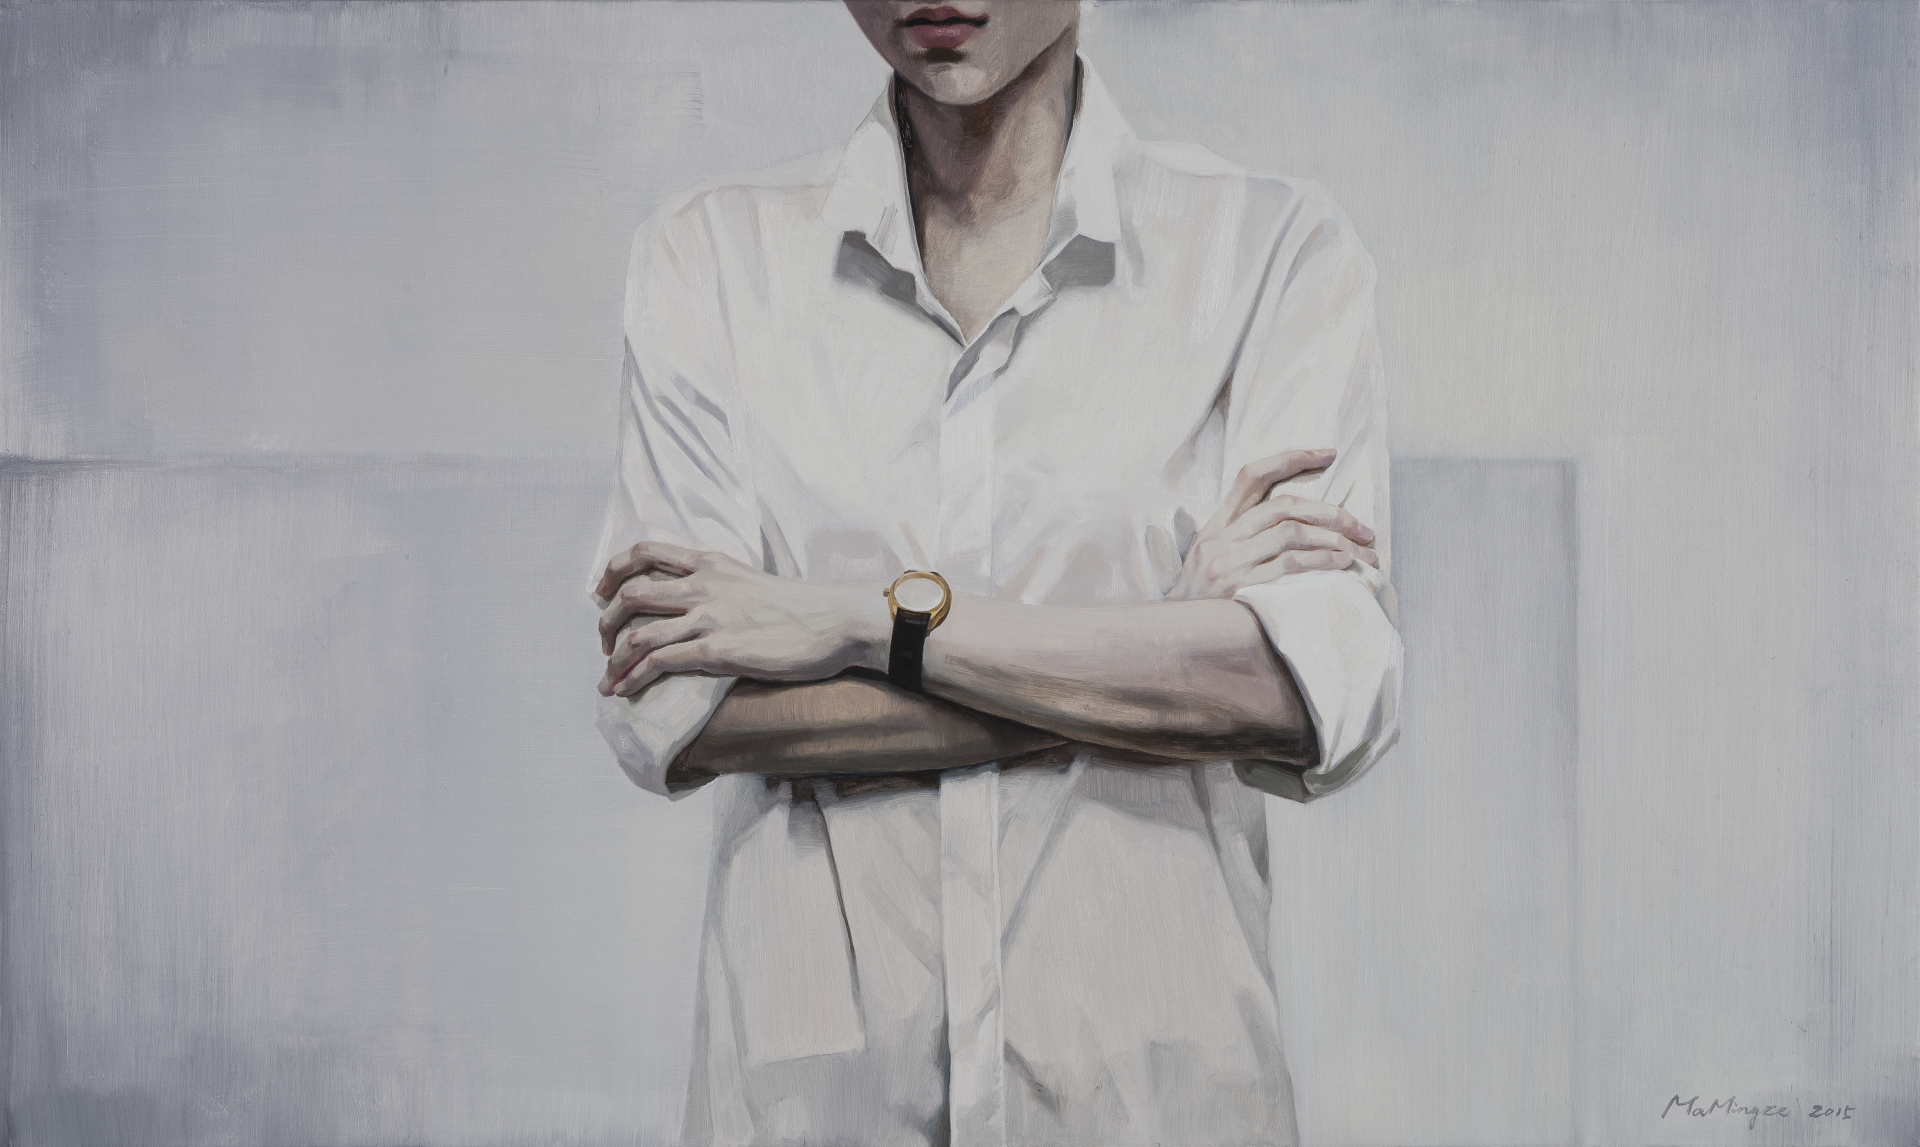 Ma Mingze's oil on canvas work named 'The Watch Isn't a Timepiece' is on display at her solo exhibition at Parkview Green Art in Beijing's 798 Art Zone. Her first-ever exhibition will run from July 8 to August 20, 2017. [Photo provided to China Plus]